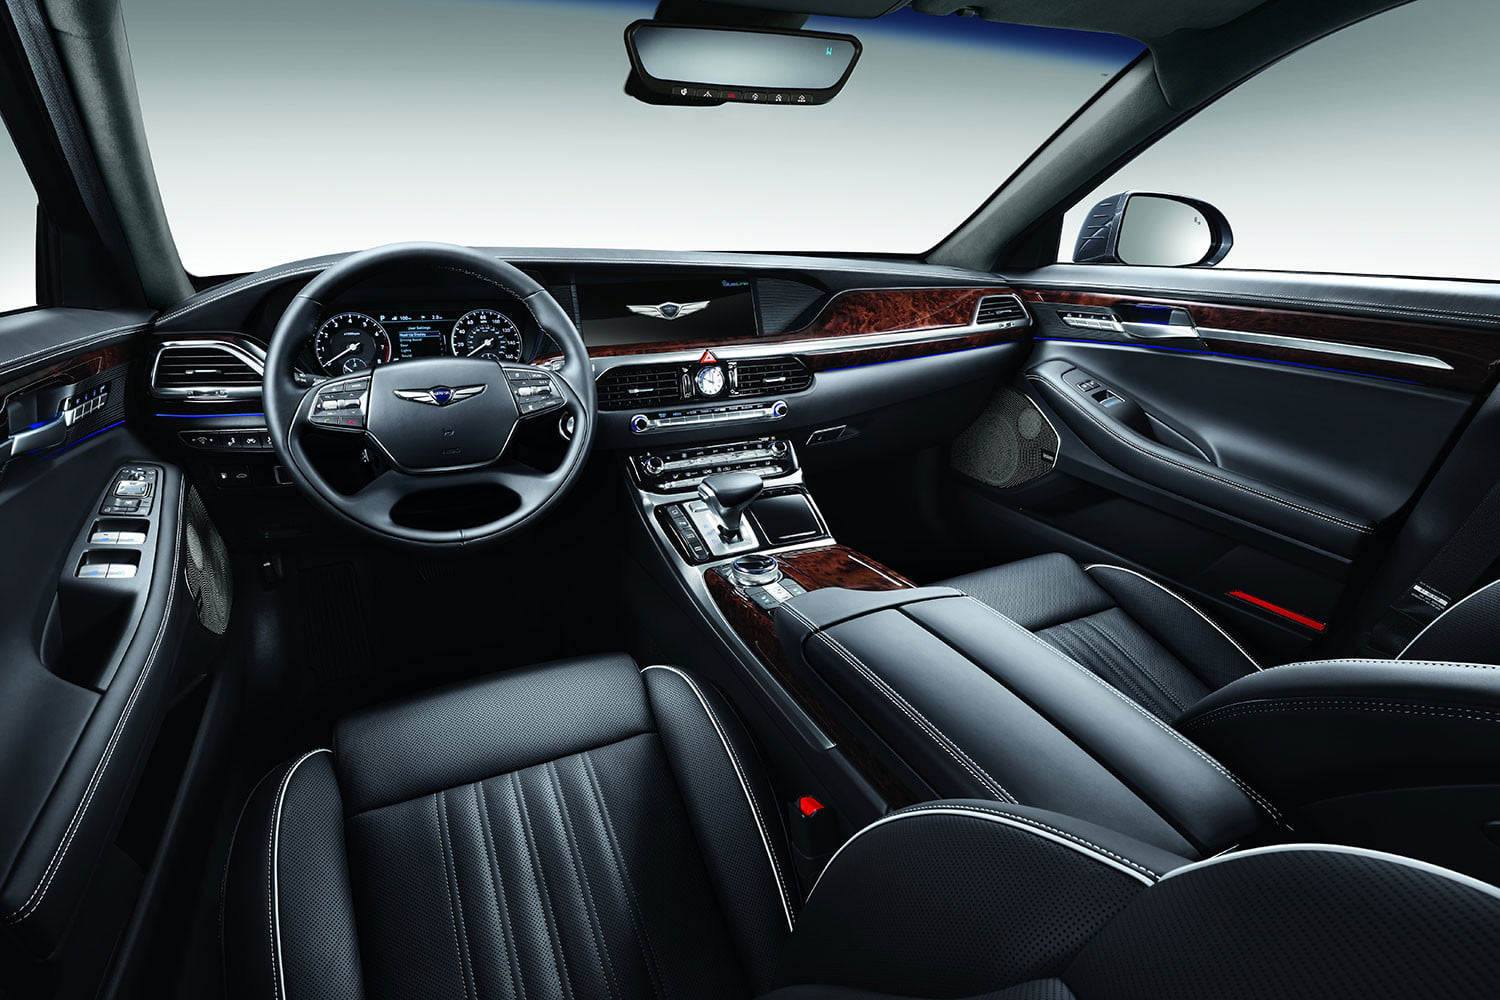 2017 genesis g90 first drive review pictures specs digital trends. Black Bedroom Furniture Sets. Home Design Ideas